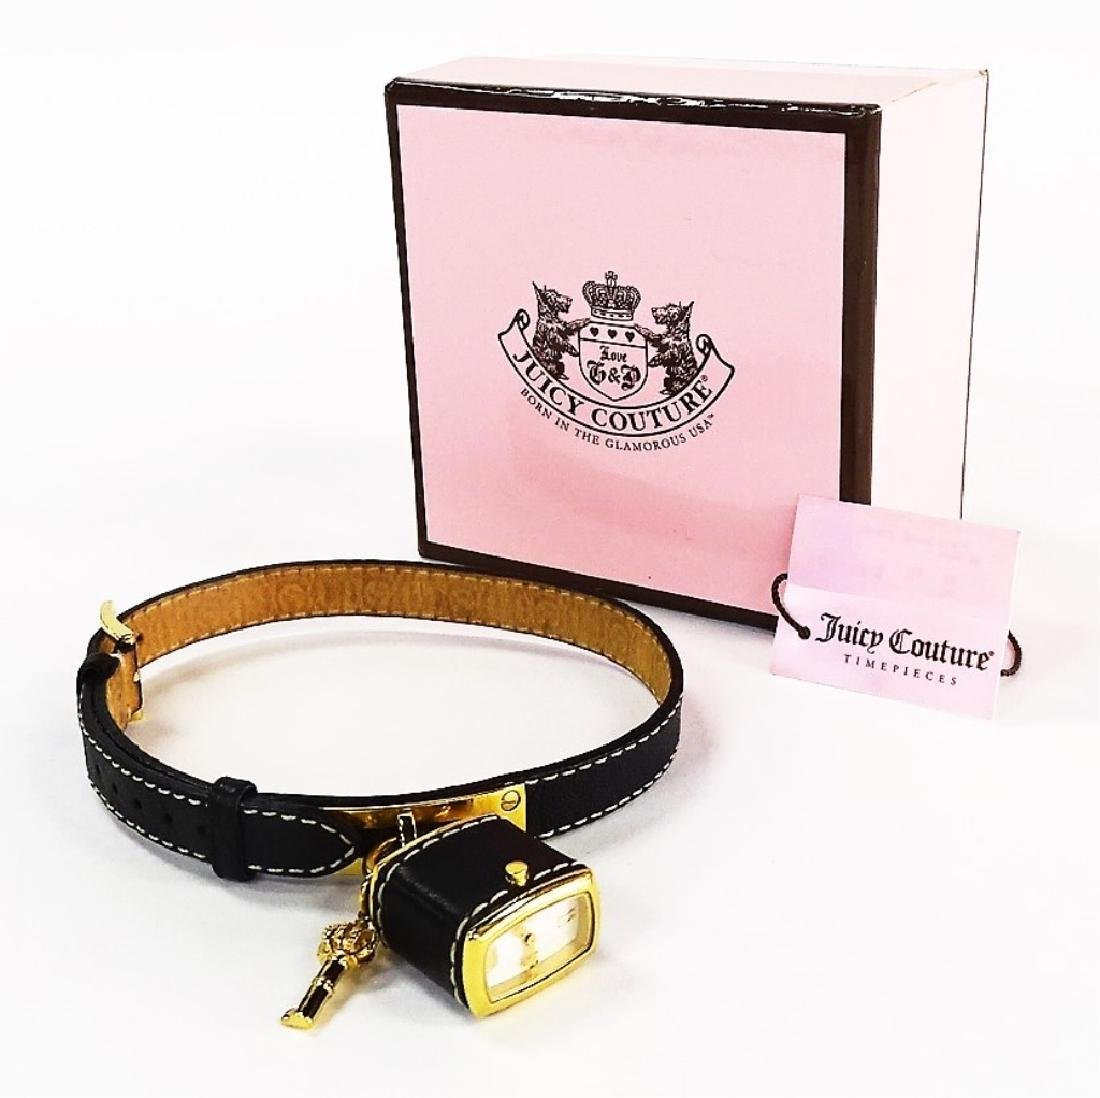 JUICY COUTURE LEATHER WRAP BRACELET NEW IN BOX - 2